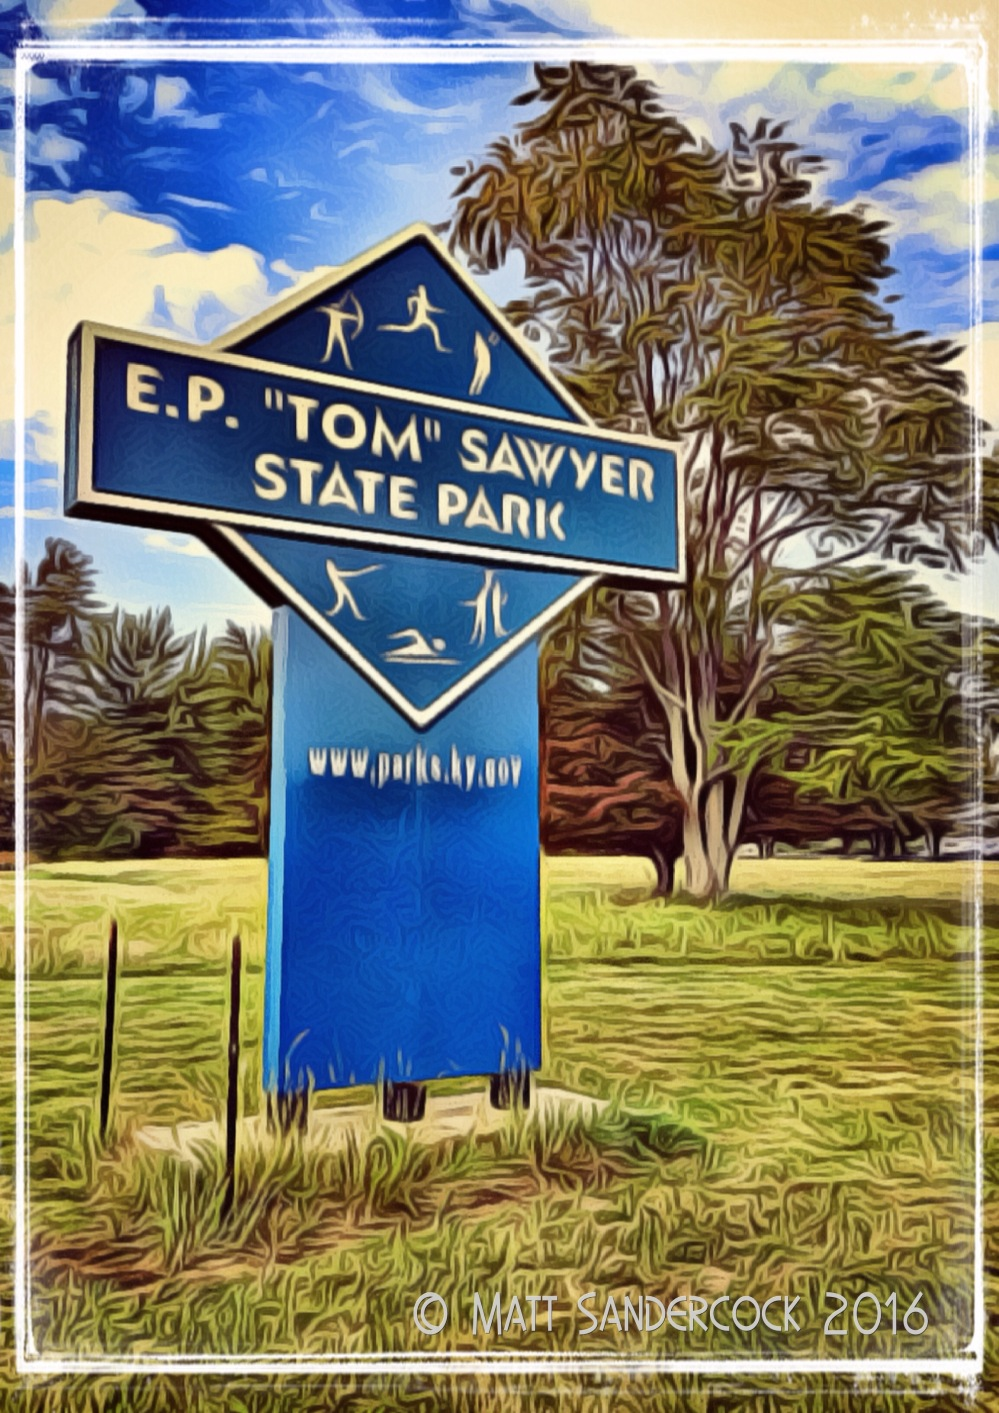 project 366, sign, iColorama, Tom Sawyer Park, state park, Louisville, Kentucky, sports, recreation, sports